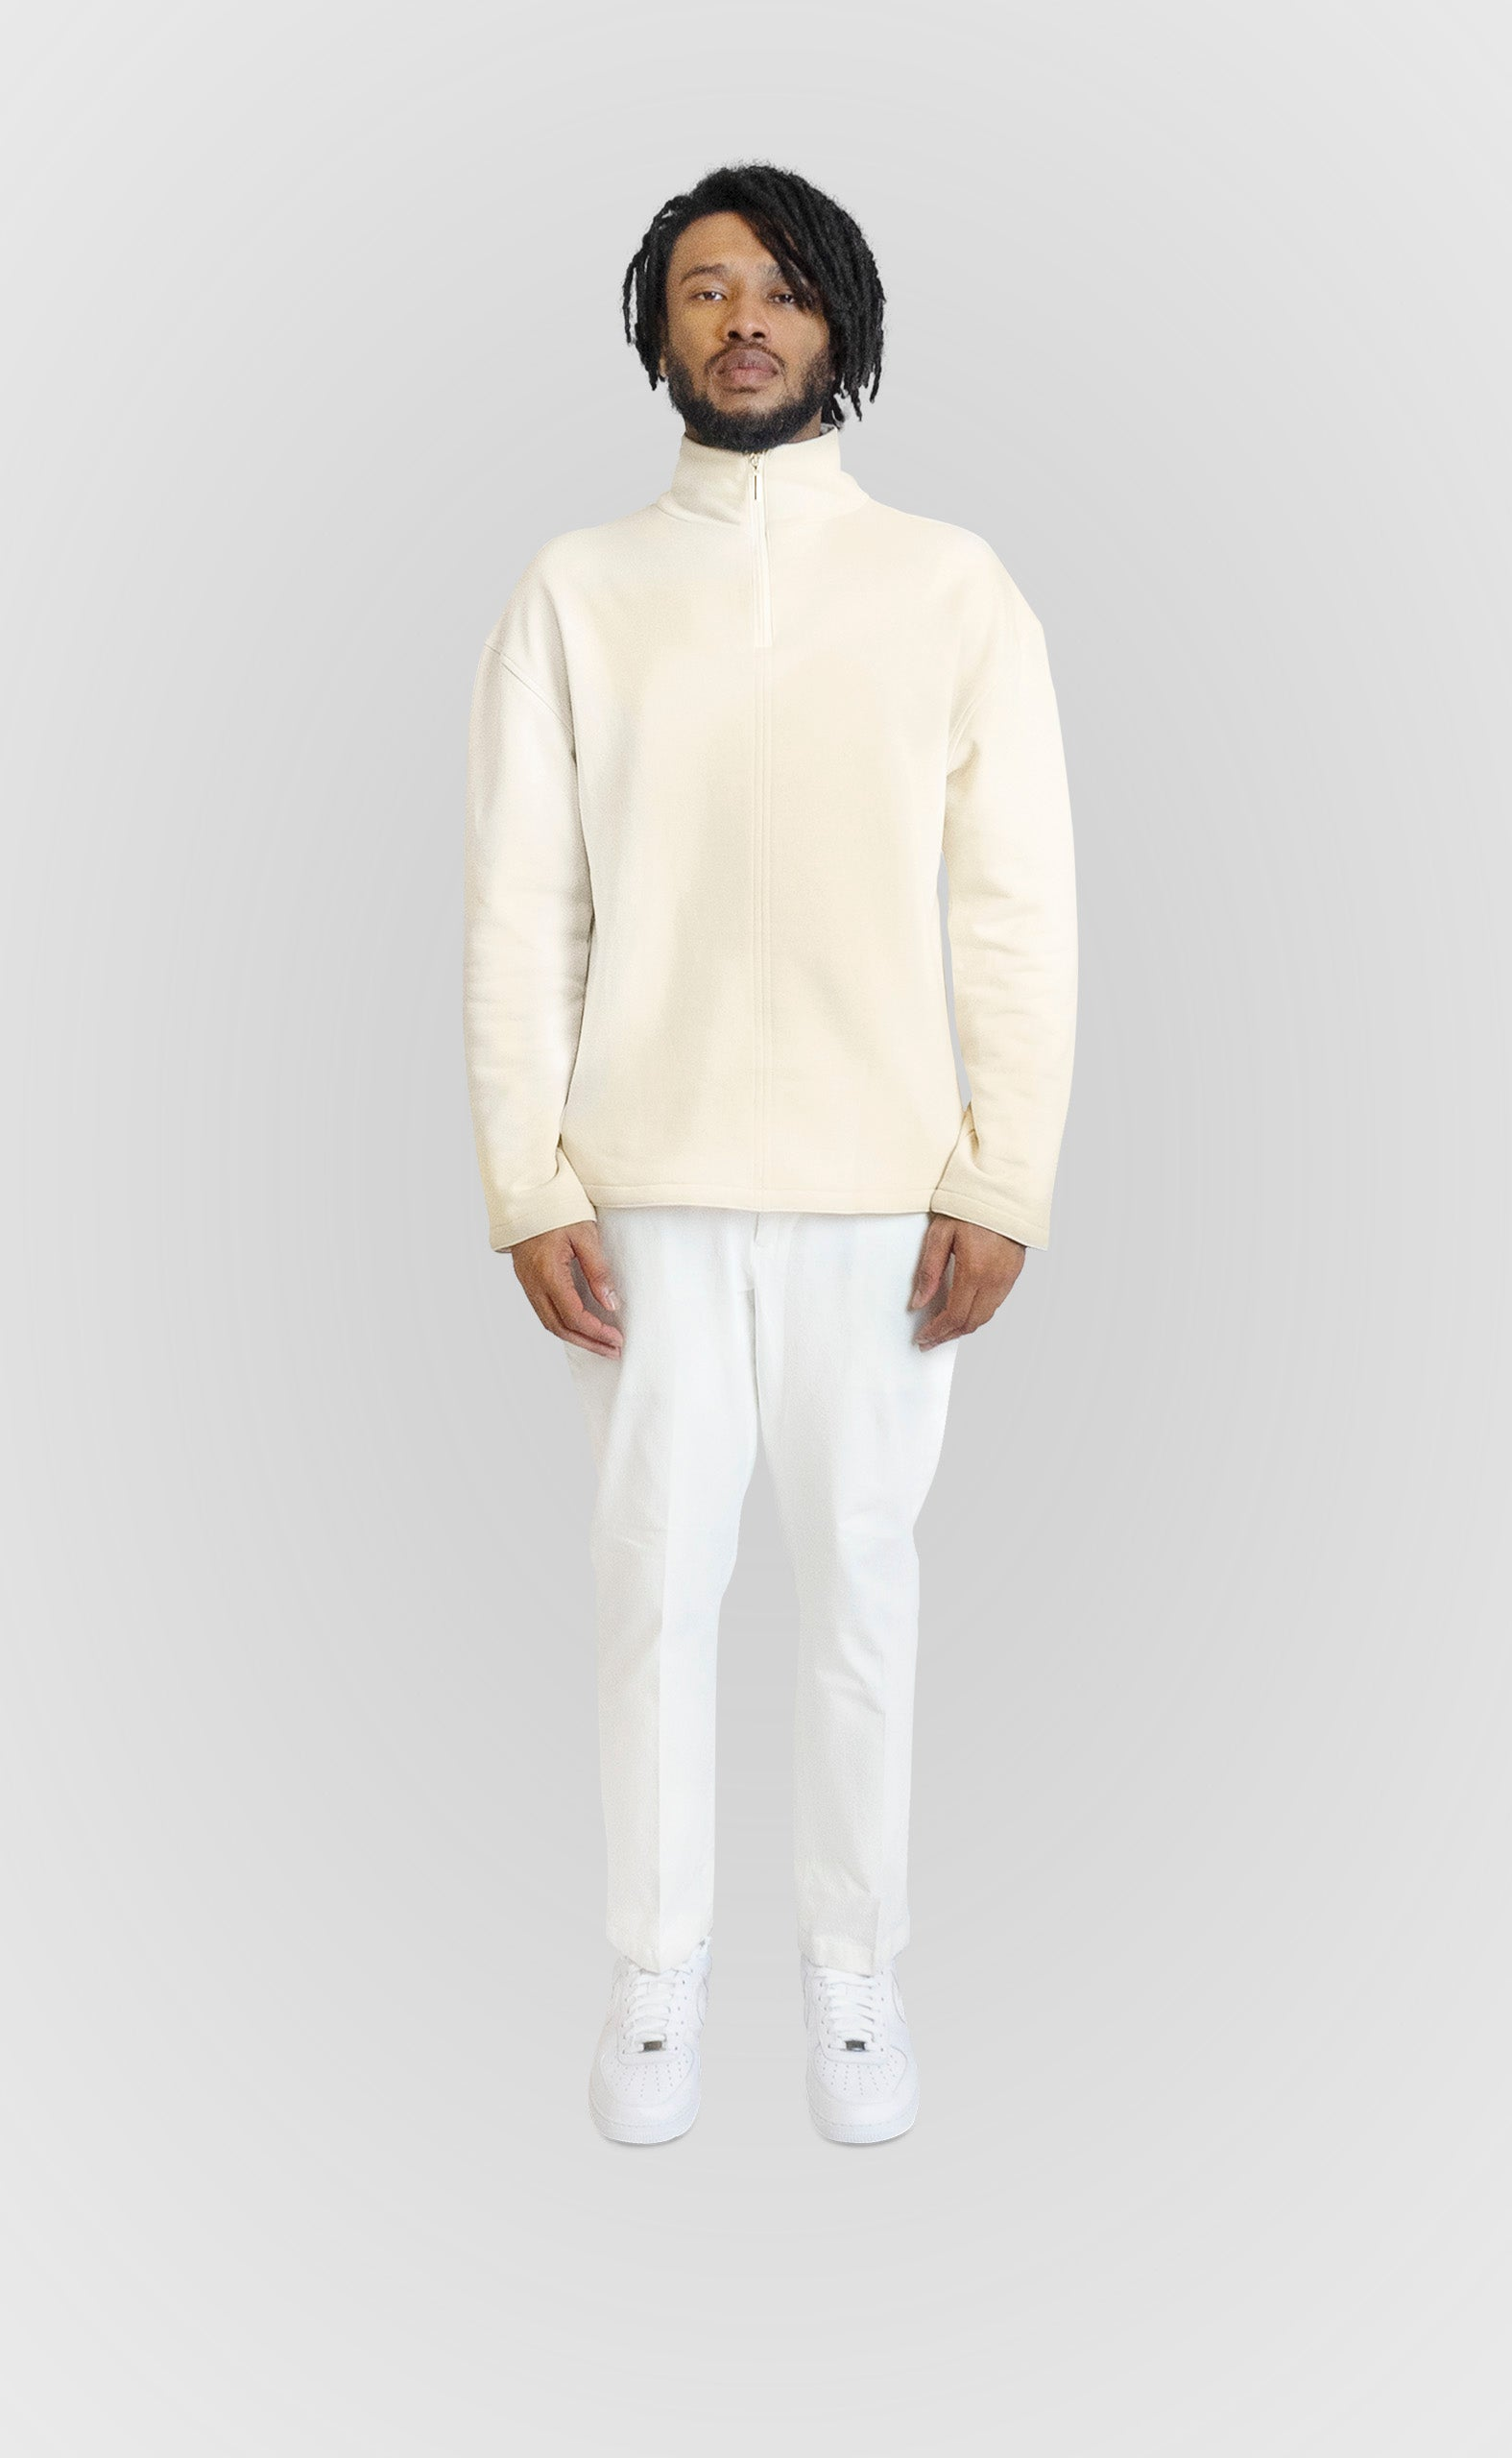 Ivory Zip Up Sweater - Alldey Studios